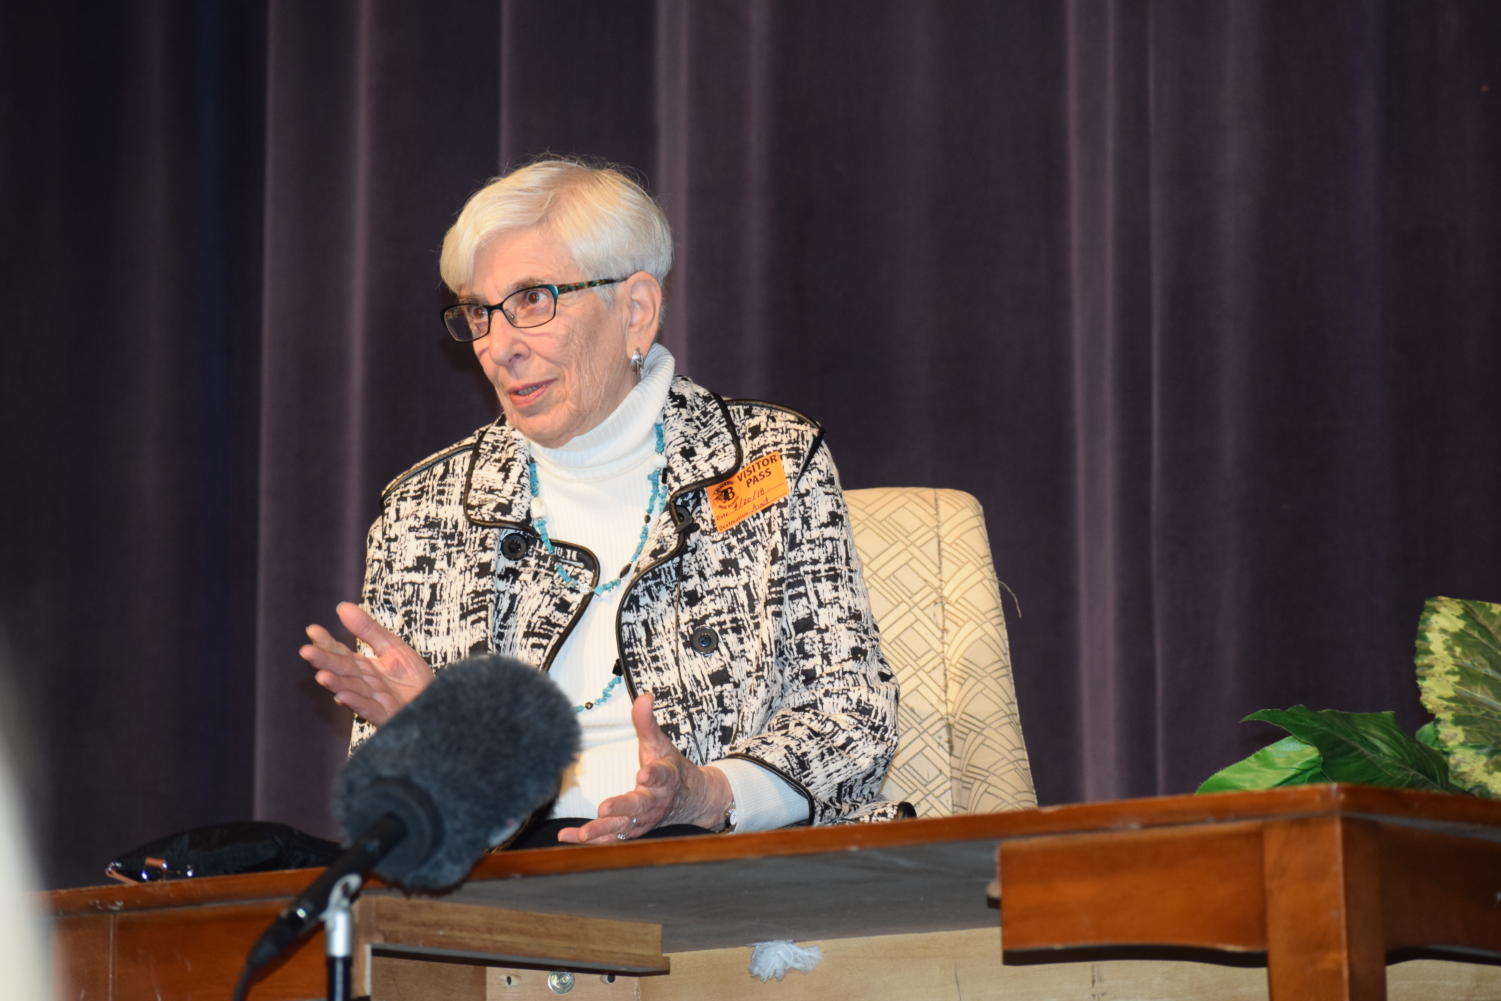 Blackman High School had a great opportunity to have a Holocaust survivor, Esther (then Rosenfeld) Starobin, speak to their students about the journey through her life.